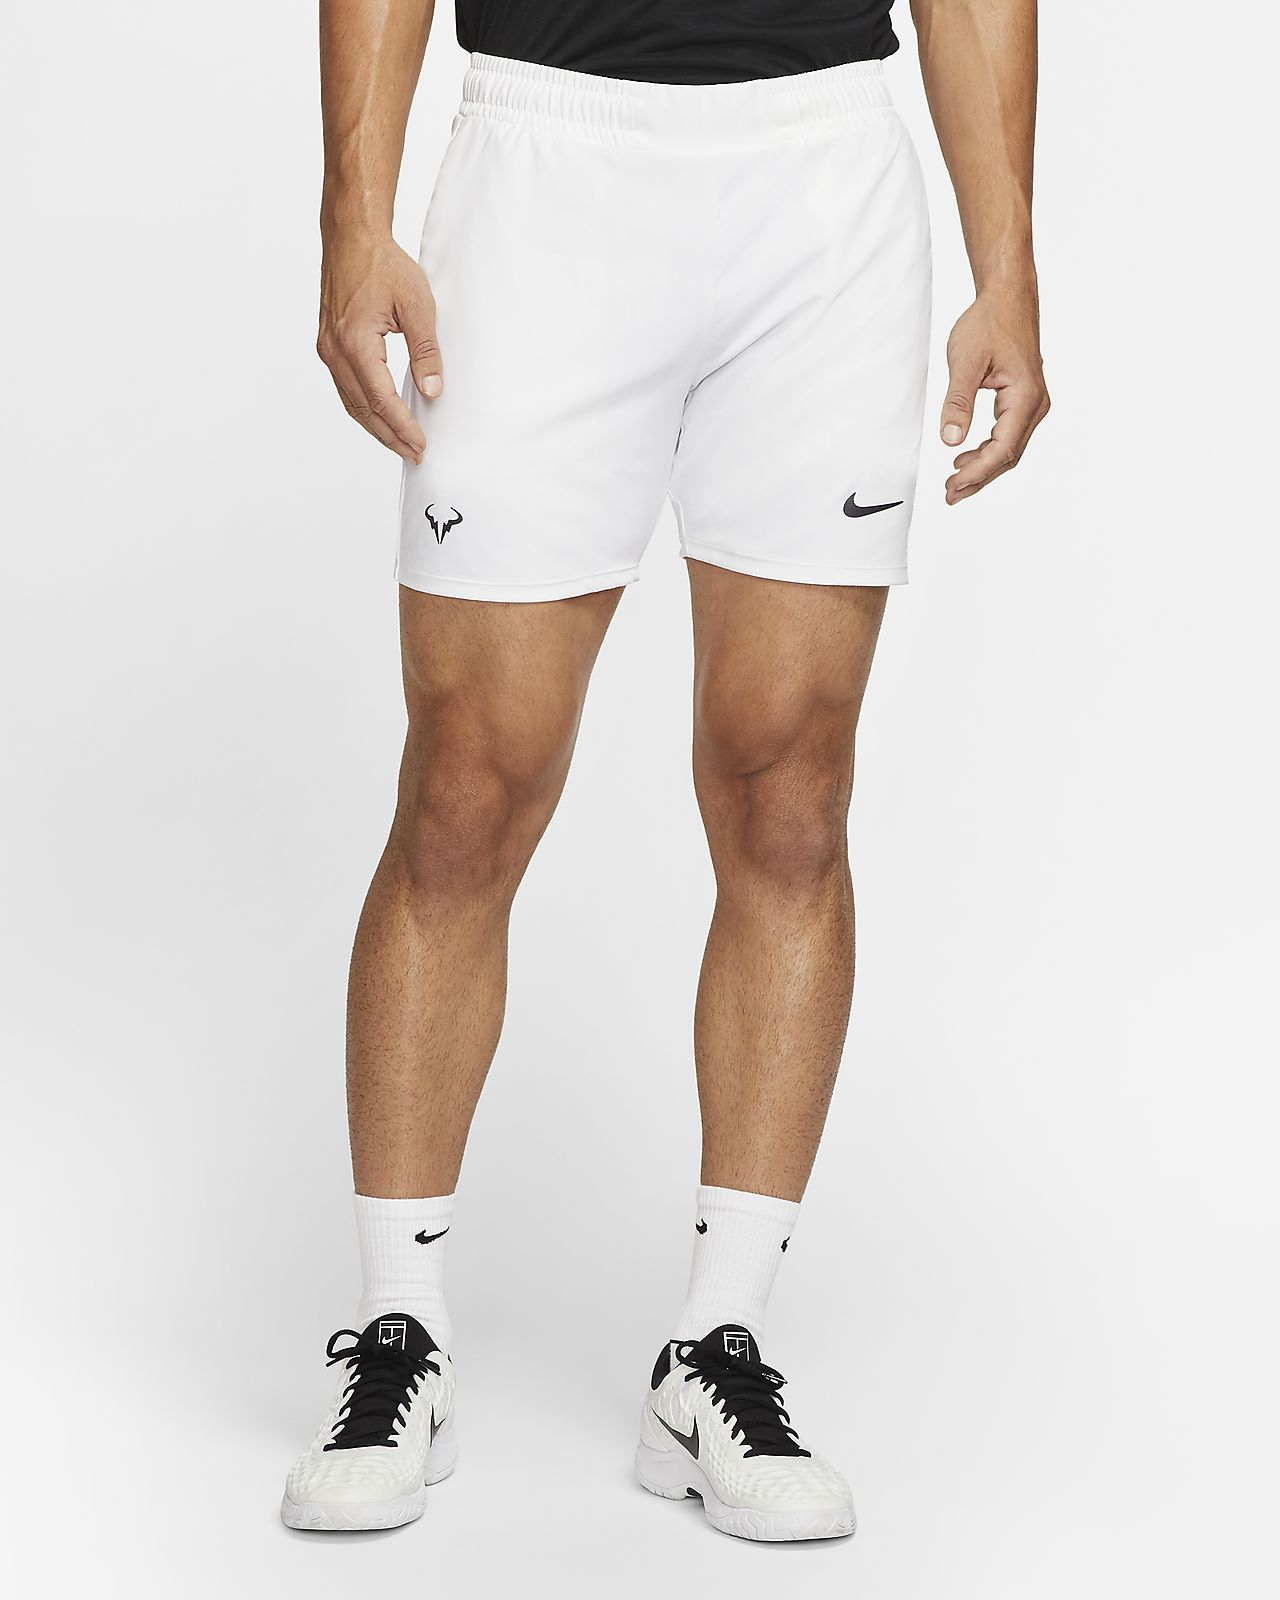 Shorts da tennis NikeCourt Dri-FIT Rafa - Uomo